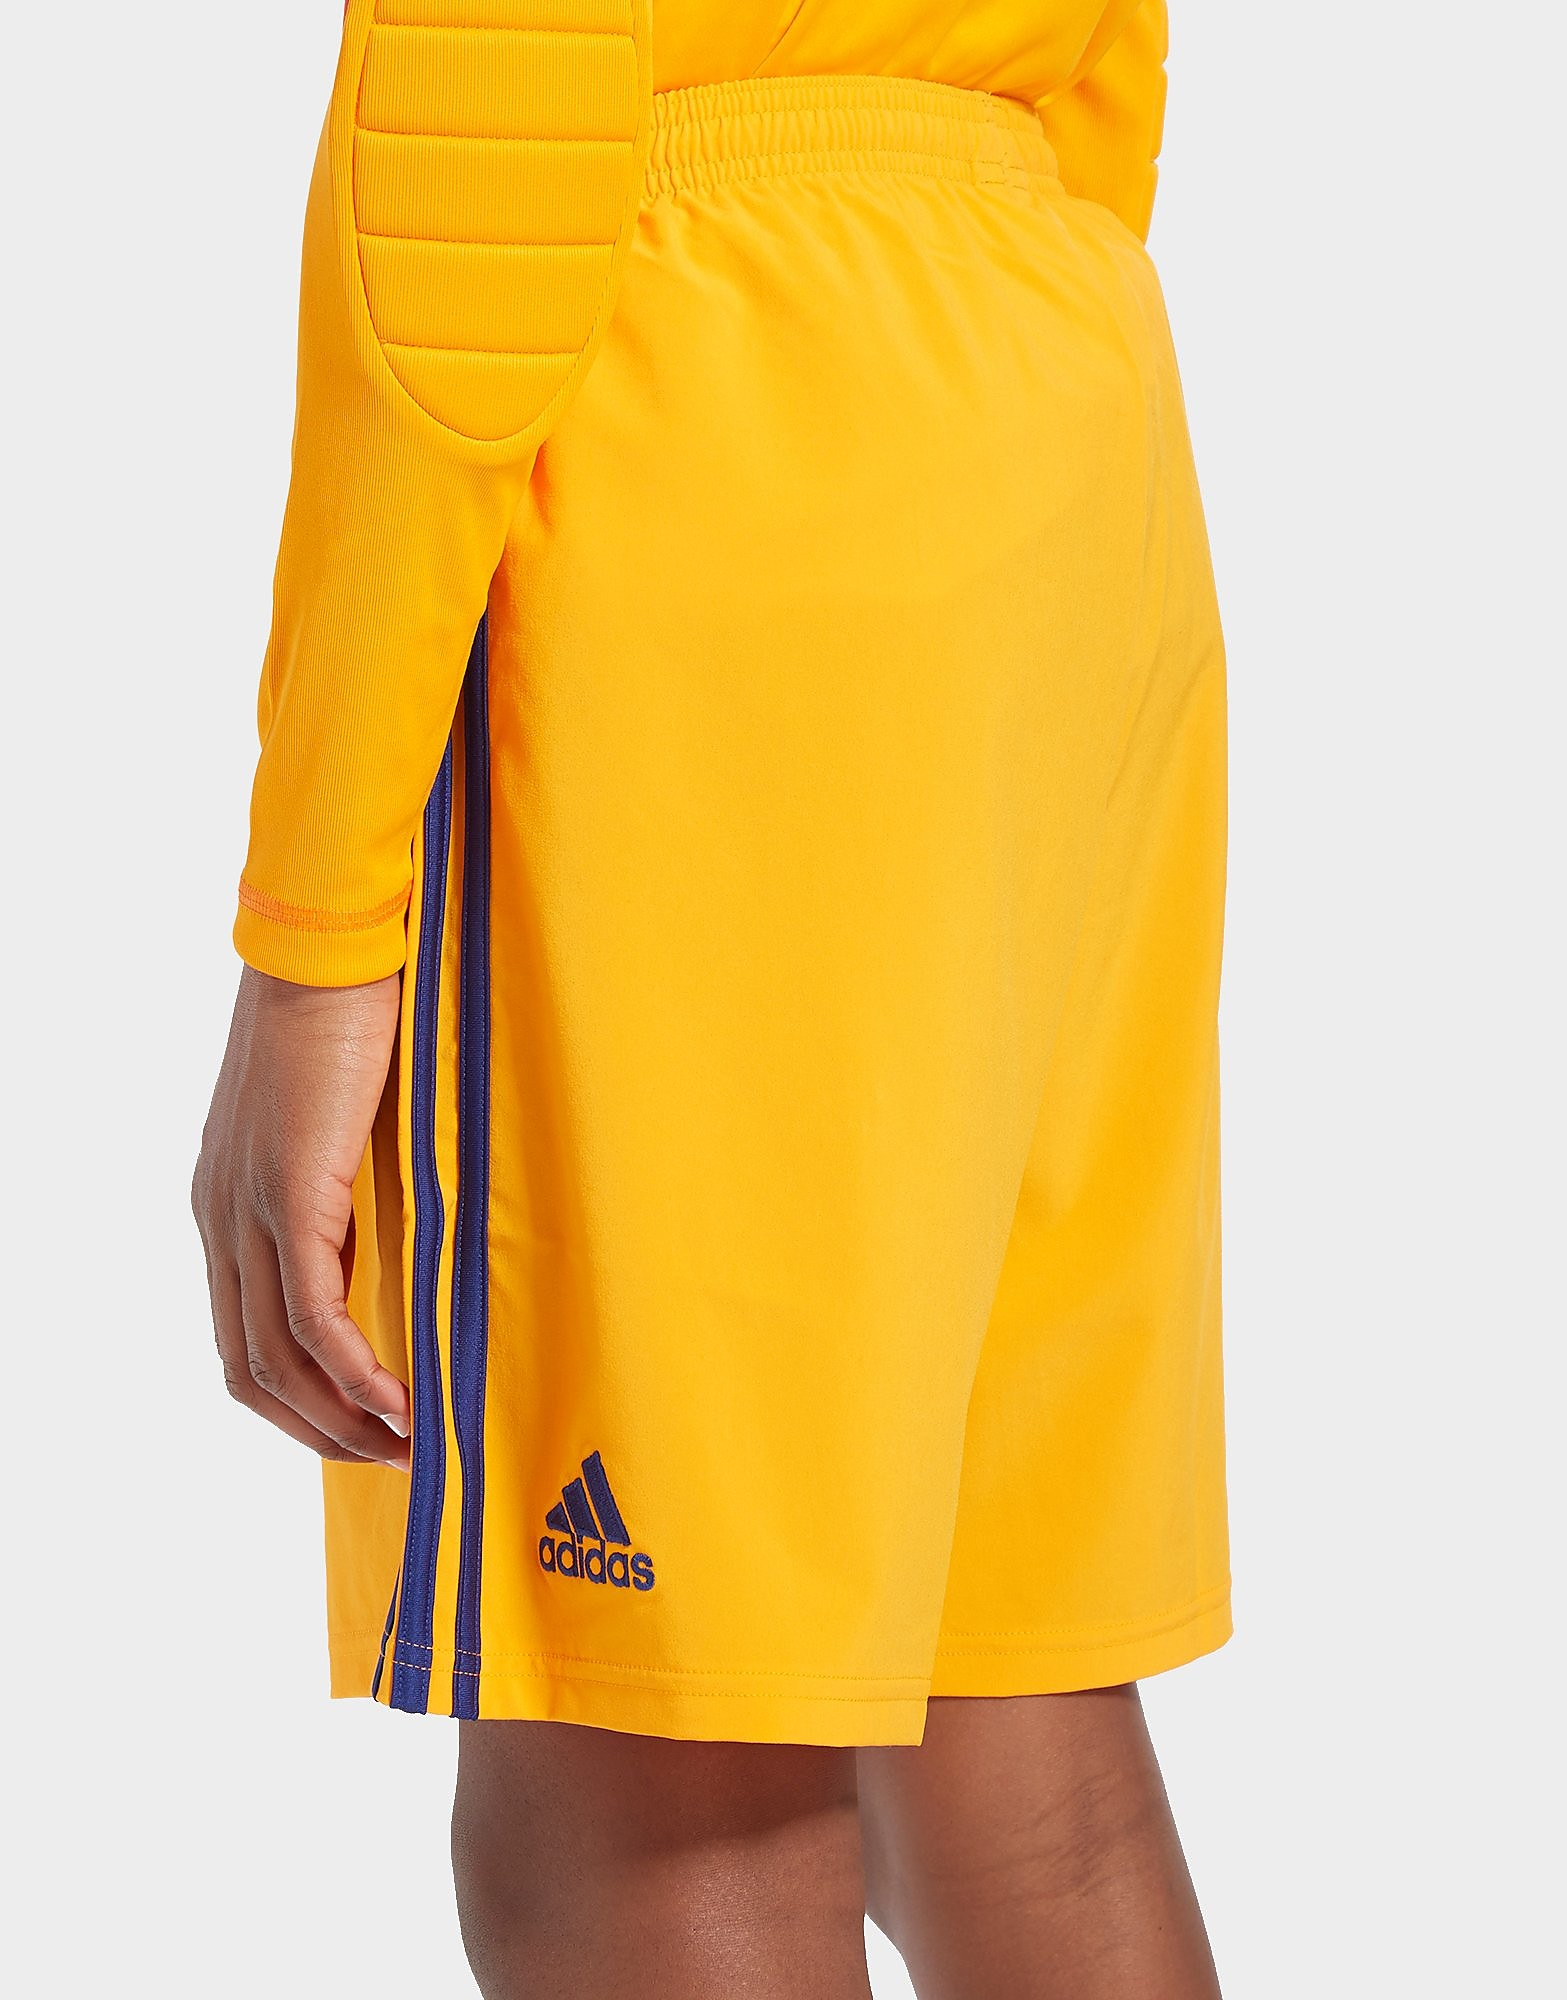 adidas Northern Ireland 2018 Home GK Shorts Junior